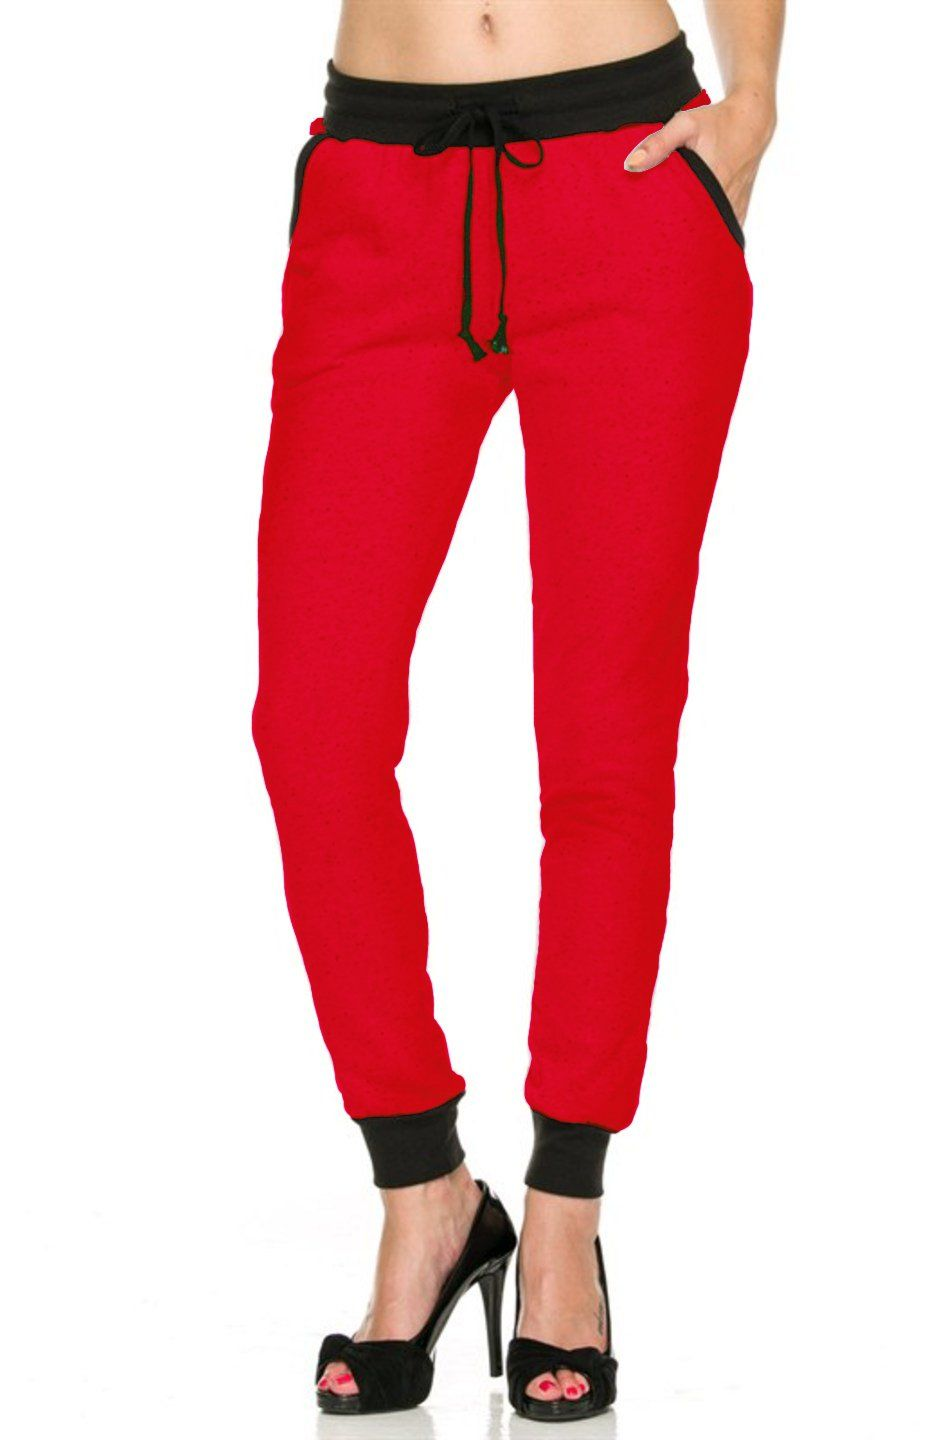 924dc3d27fa 2LUV Women s Comfy And Trendy Drawstring Jogger Pants at Amazon Women s  Clothing store